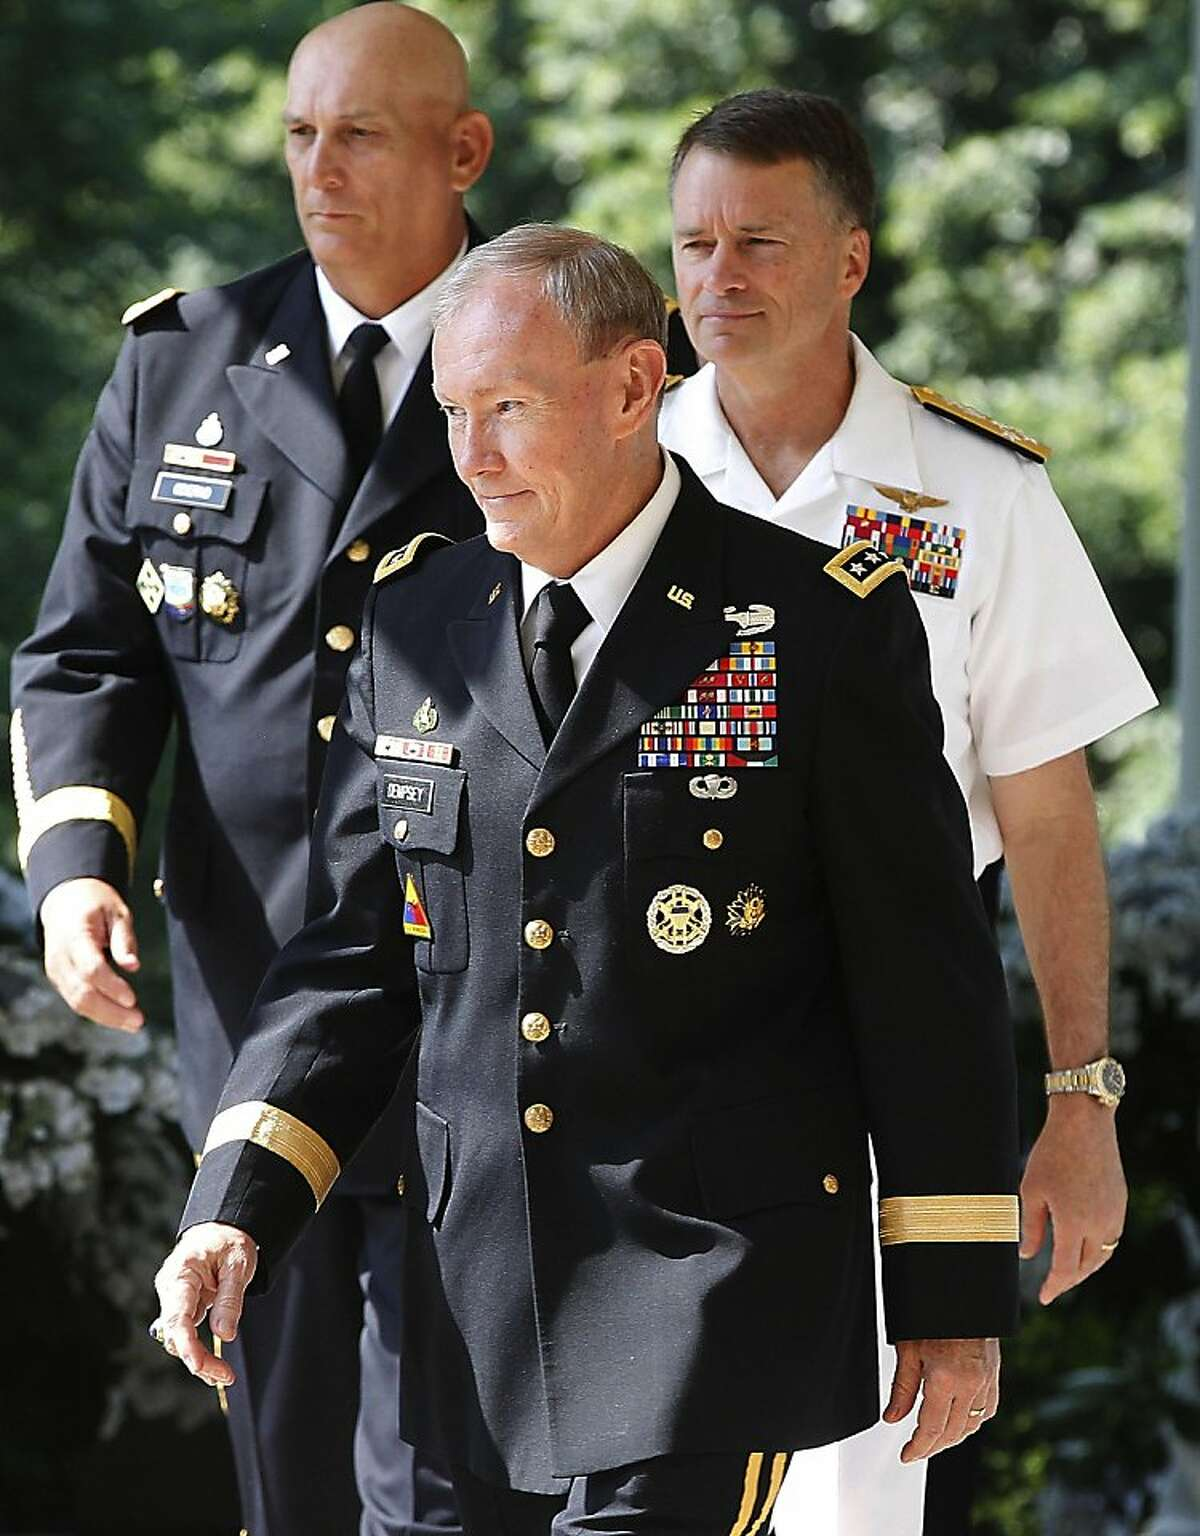 President Obama's nominee for the next Chairman of the Joint Chiefs of Staff Army Gen. Martin Dempsey, nominee Adm. James Winnefeld, right, to be vice chairman of the Joint Chiefs, and Gen. Ray Odierno, left, to be Army Chief of Staff walk to a Rose Garden announcement ceremony at the White House in Washington Monday, May 30, 2011.